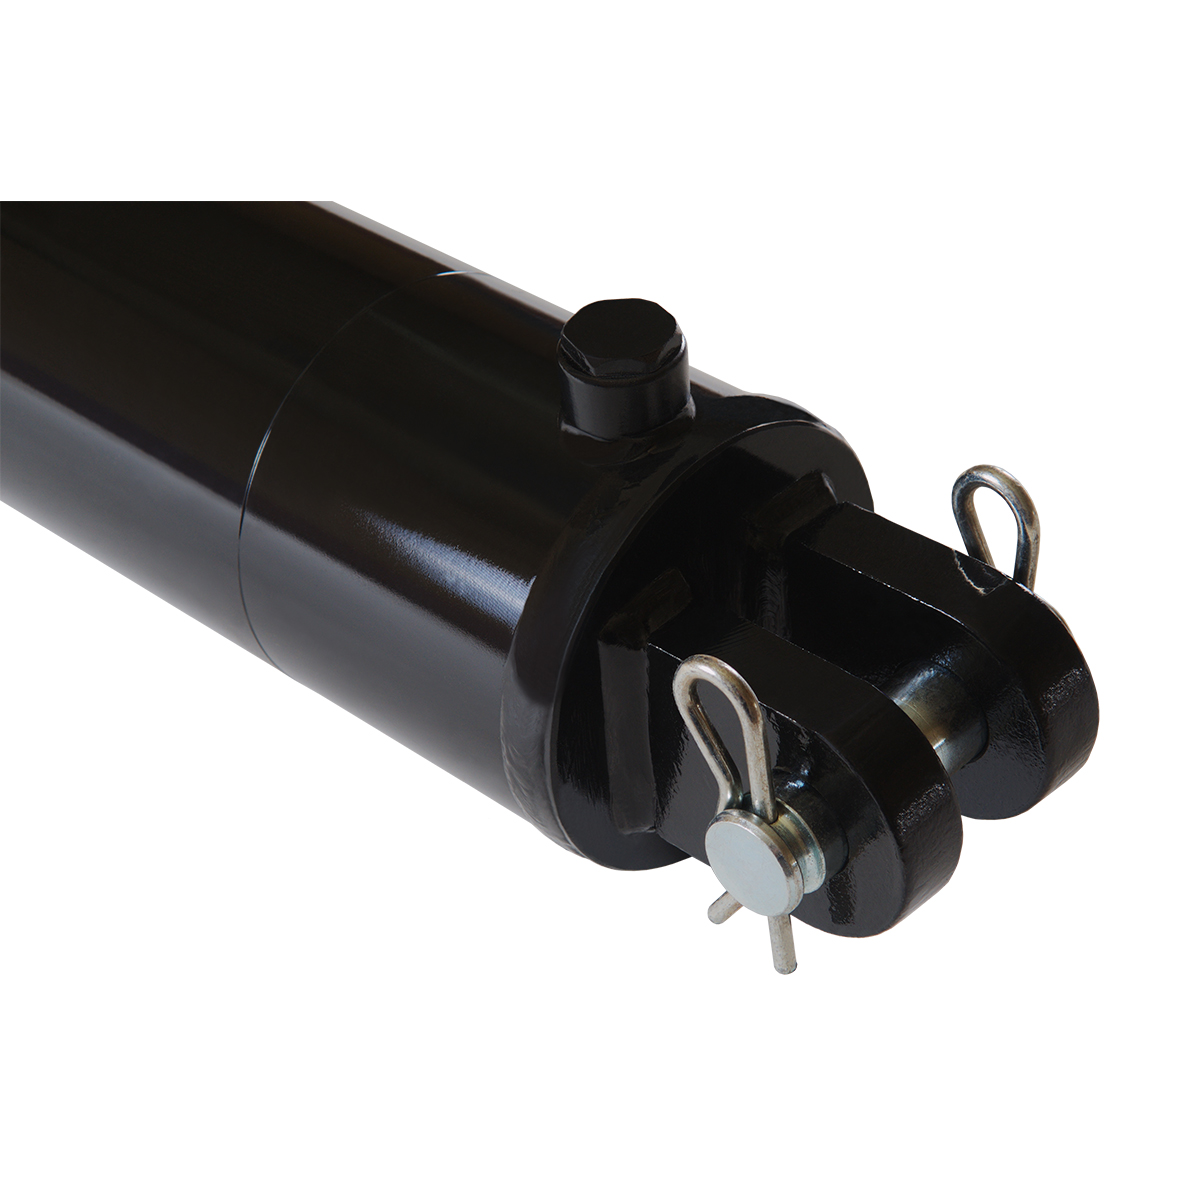 4 bore x 10 stroke hydraulic cylinder, welded clevis double acting cylinder | Magister Hydraulics